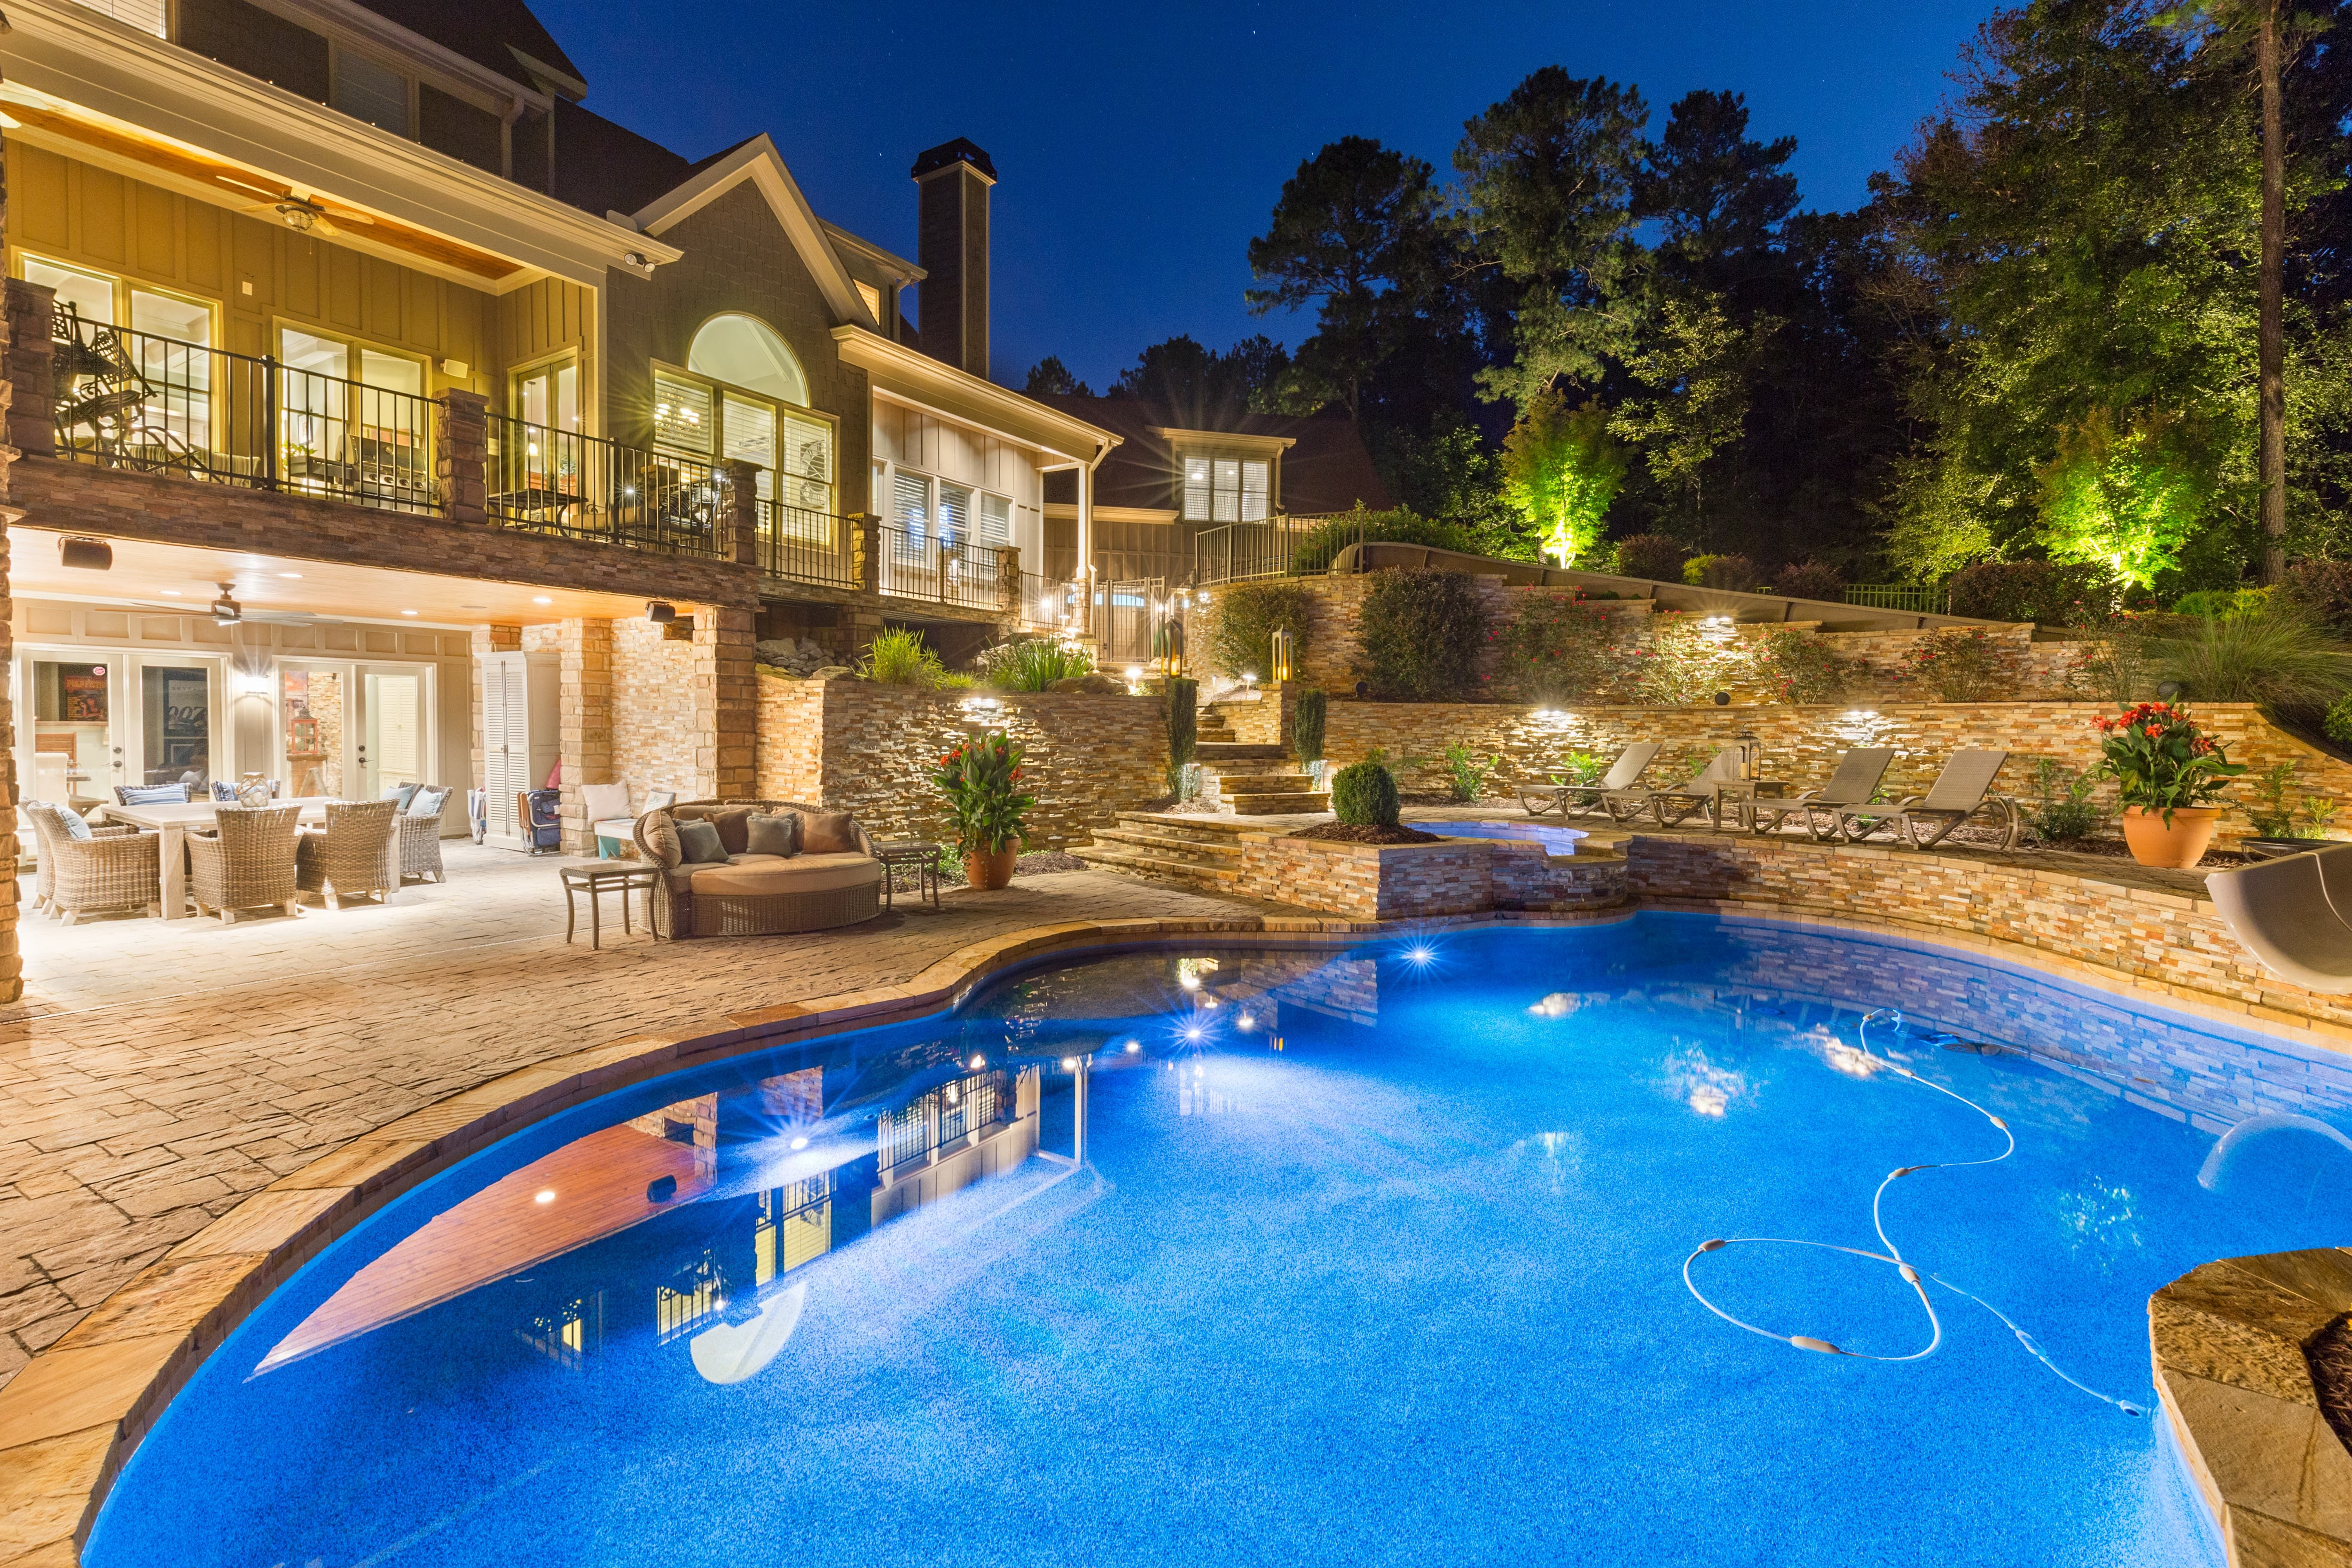 Let lights over atlanta be your preferred landscape lighting company let lights over atlanta be your preferred landscape lighting company call today and ask about aloadofball Images